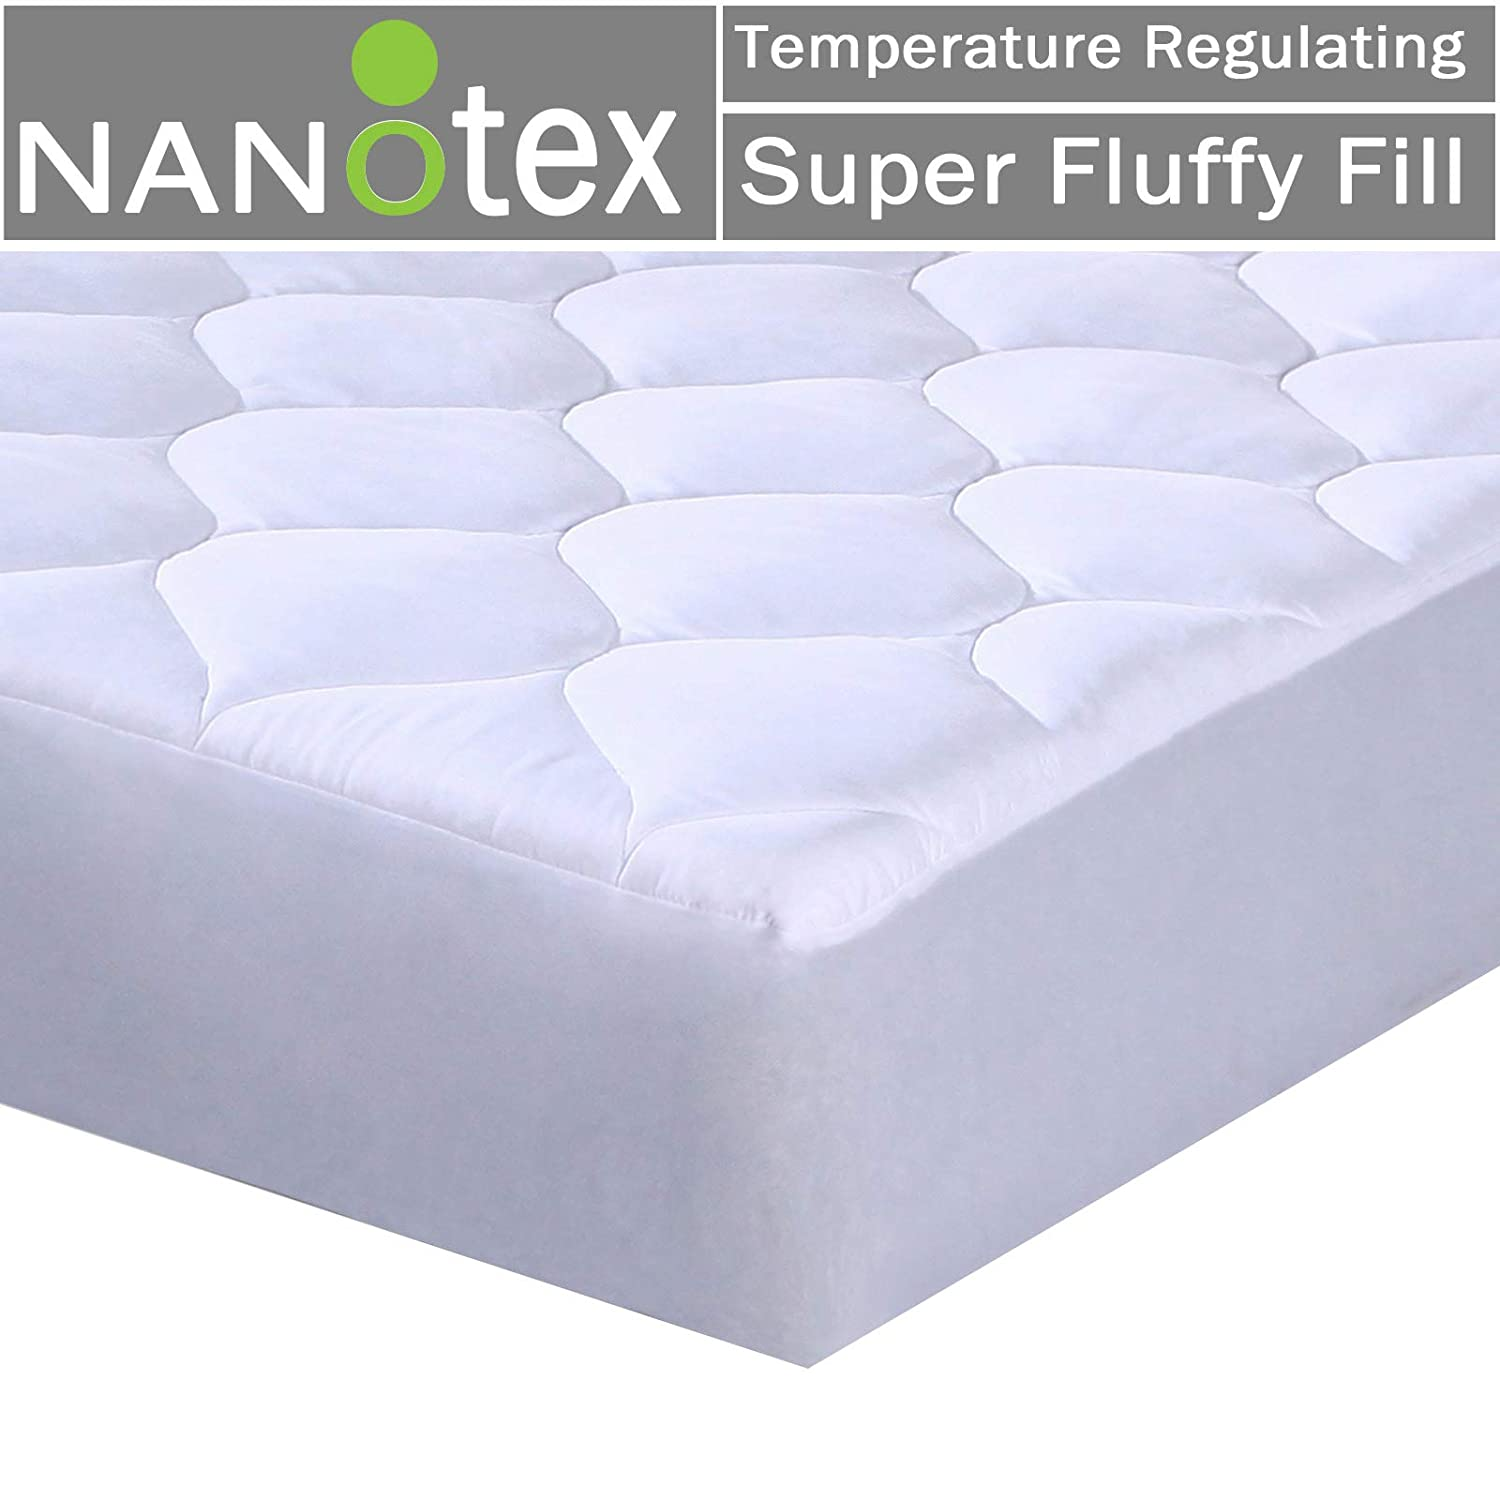 Mattress Pad Quilted Fitted Featuring Nanotex Coolest Comfort Temperature Regulating Cooling Technology. Super Soft SPA Grade Microfiber. Guaranteed to Fit Up to 18 Inch Mattress. (Full Size) Snuz